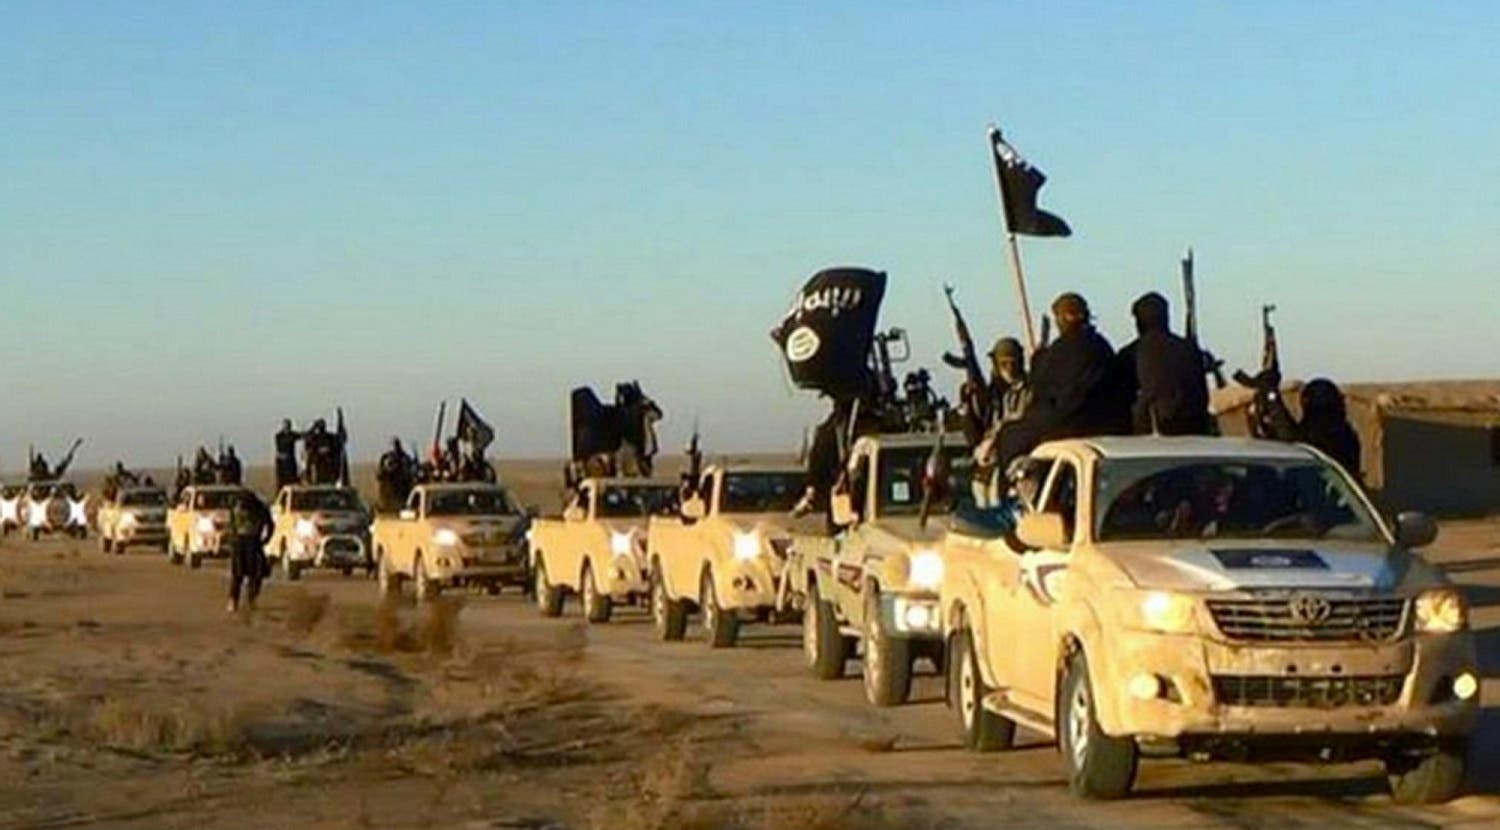 In this undated file photo released online in the summer of 2014 on a militant social media account, which has been verified and is consistent with other AP reporting, militants of the Islamic State group hold up their weapons and wave its flags on their vehicles in a convoy on a road leading to Iraq, in Raqqa, Syria. (Militant photo via AP, File)